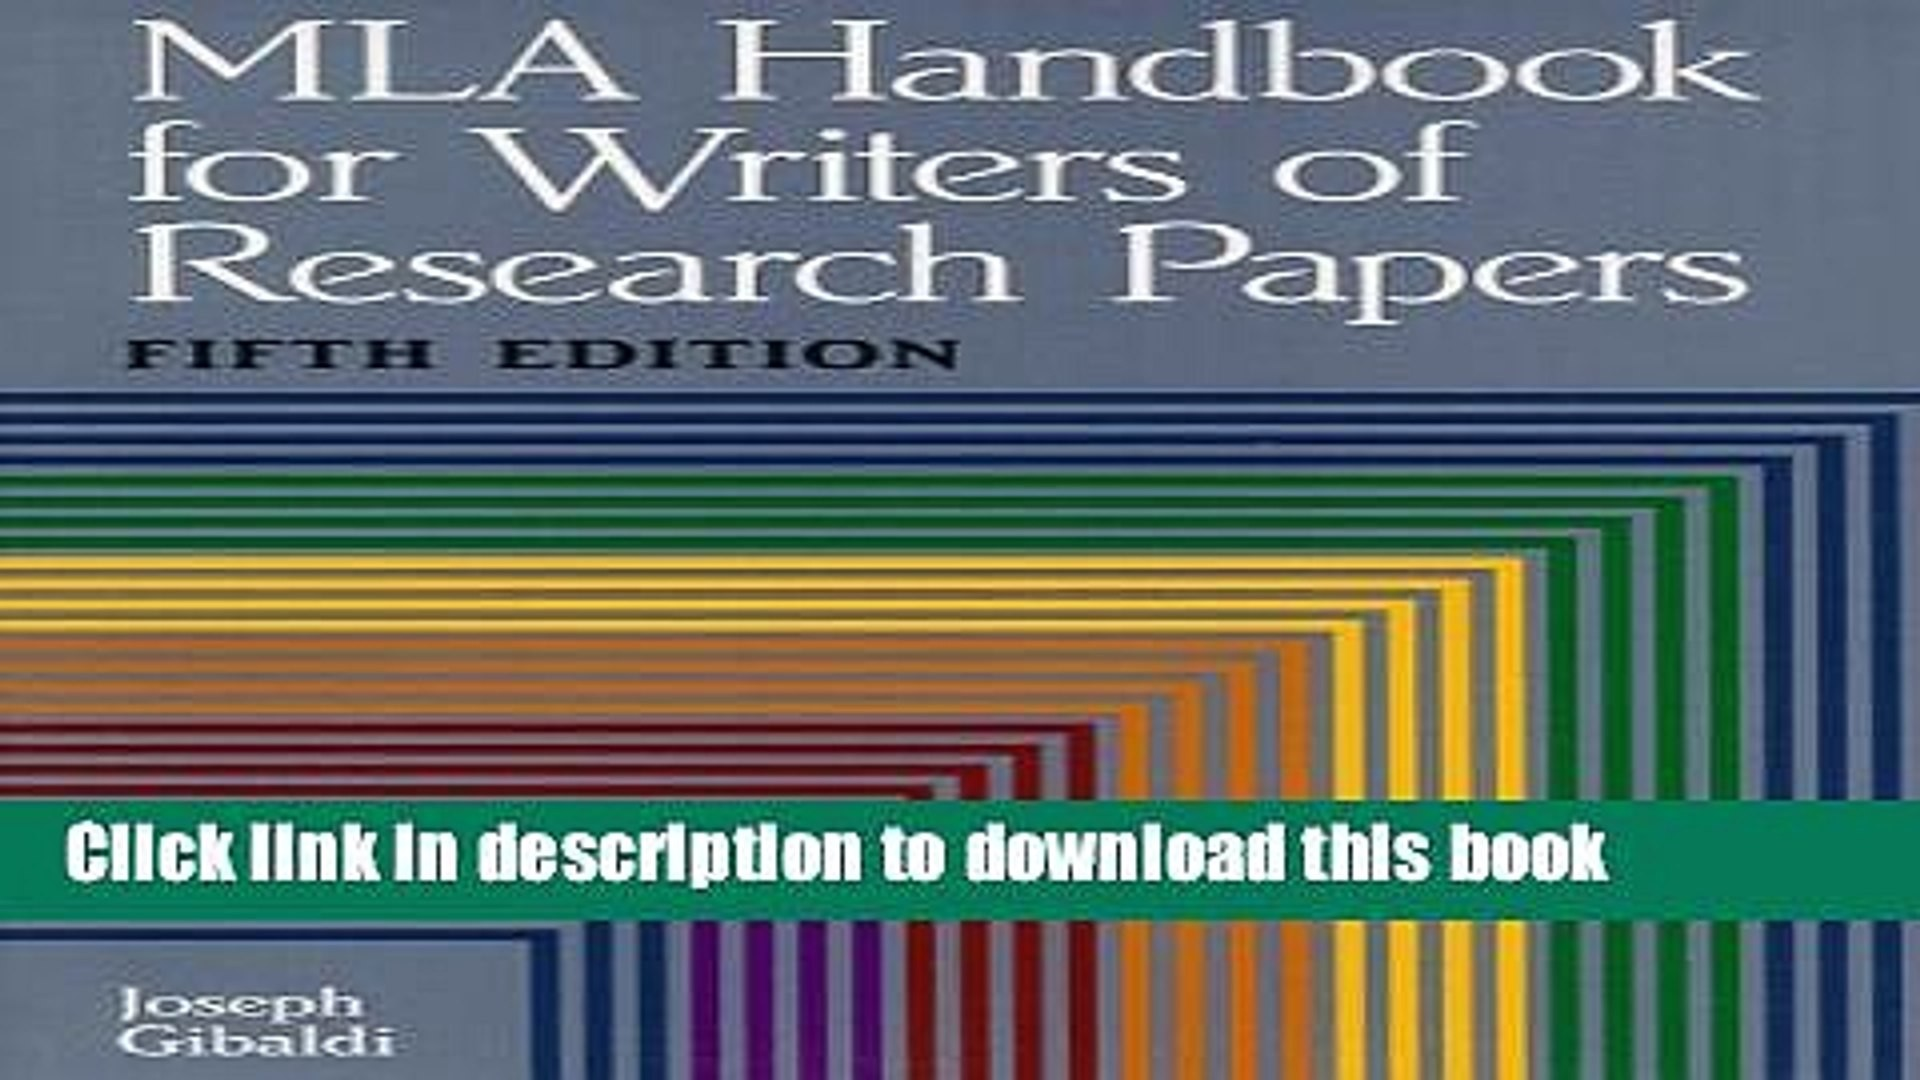 005 Mla Handbook For Writing Research Papers Paper X1080 Frightening Writers Of 8th Edition Pdf Free Download According To The 1920